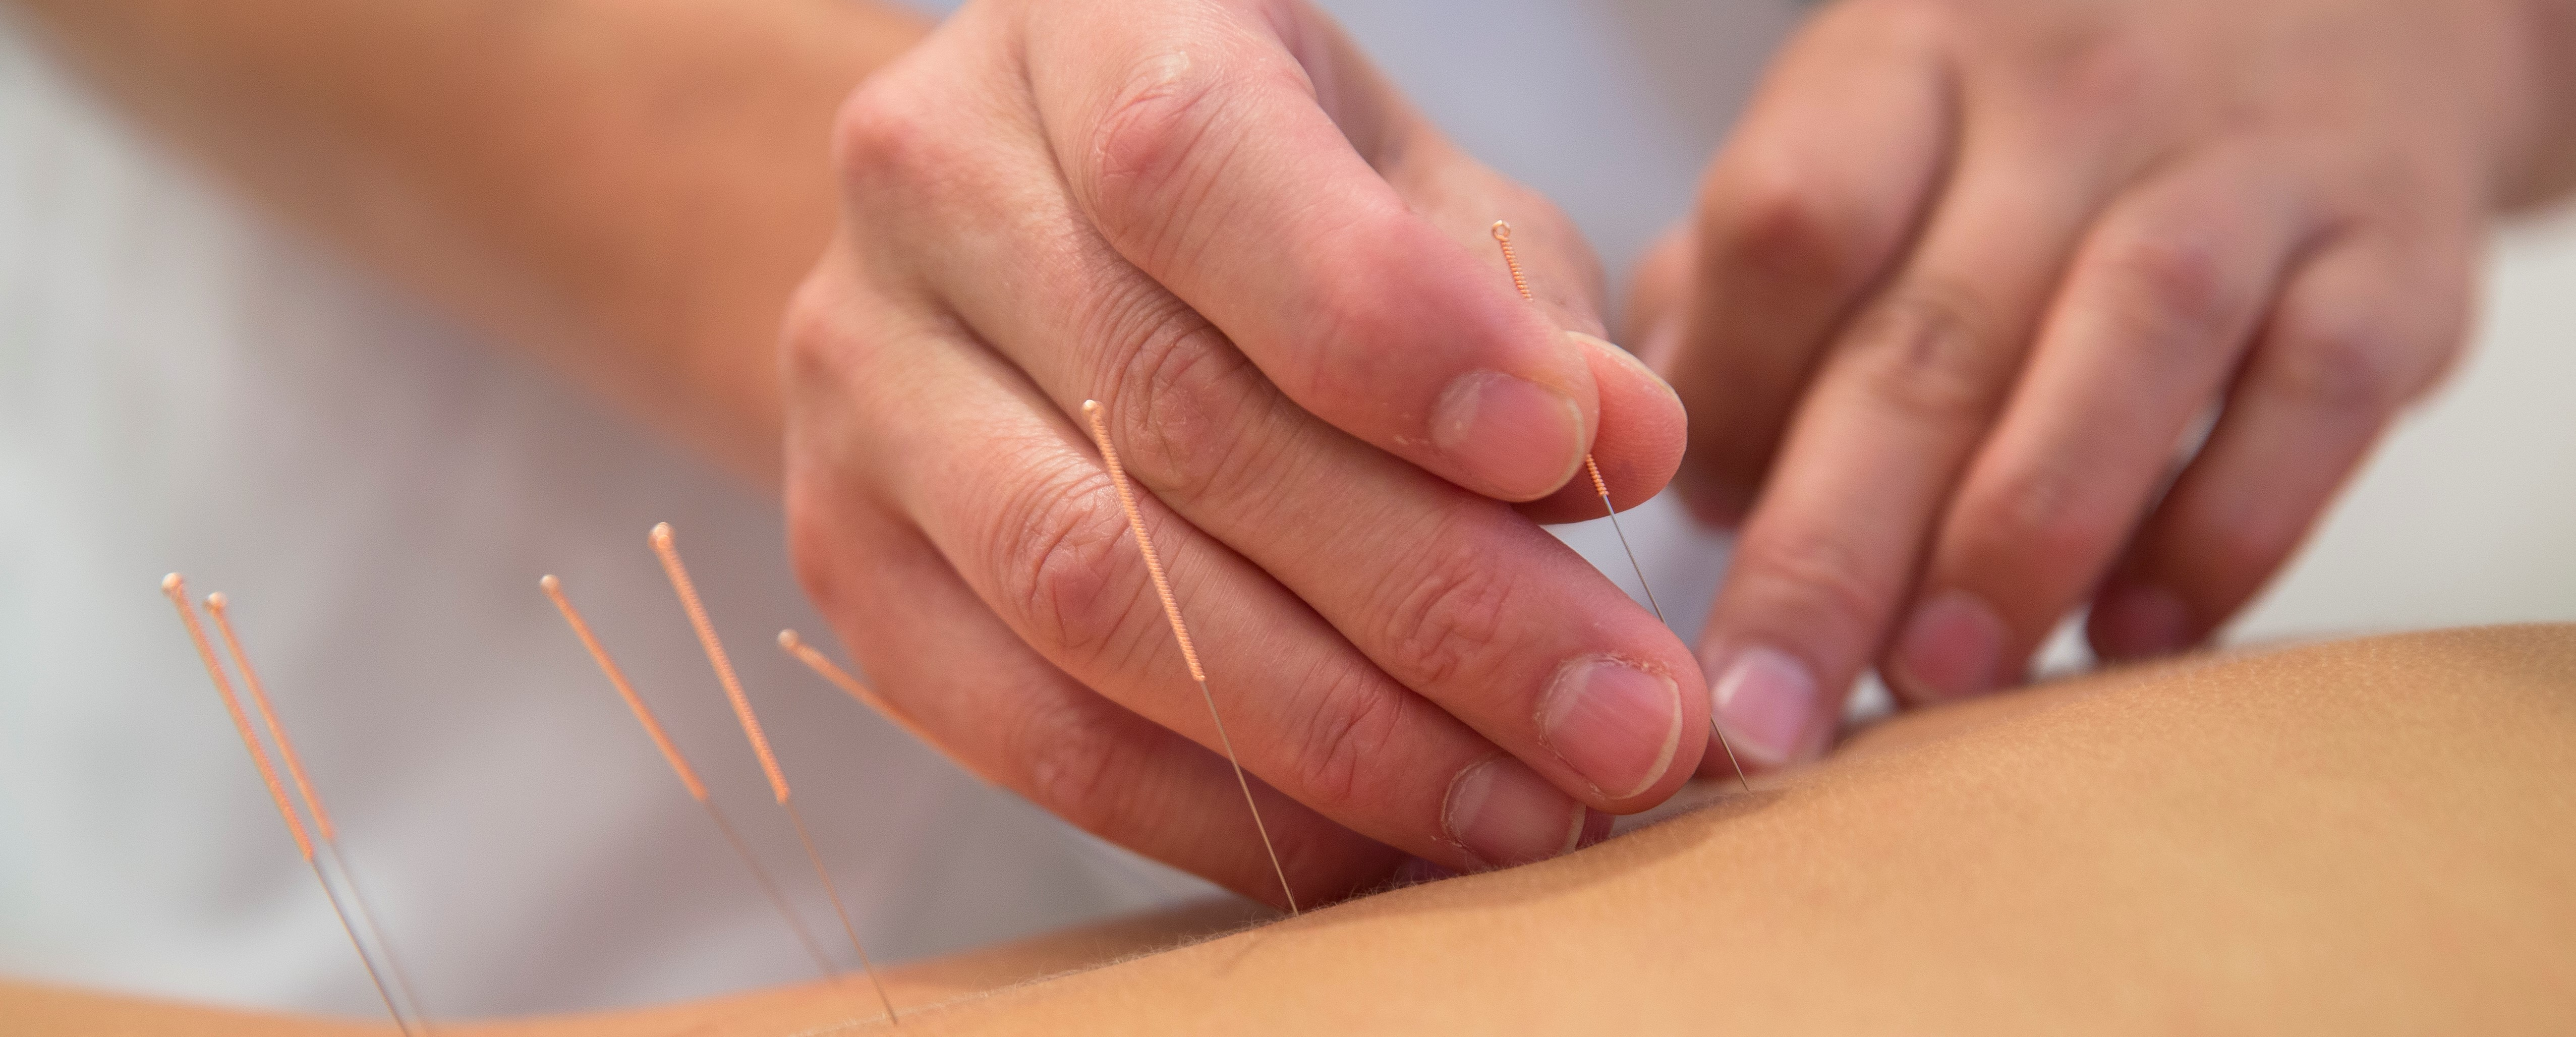 Landmark summary in Journal of Pain deems referral for acupuncture for chronic pain a reasonable option